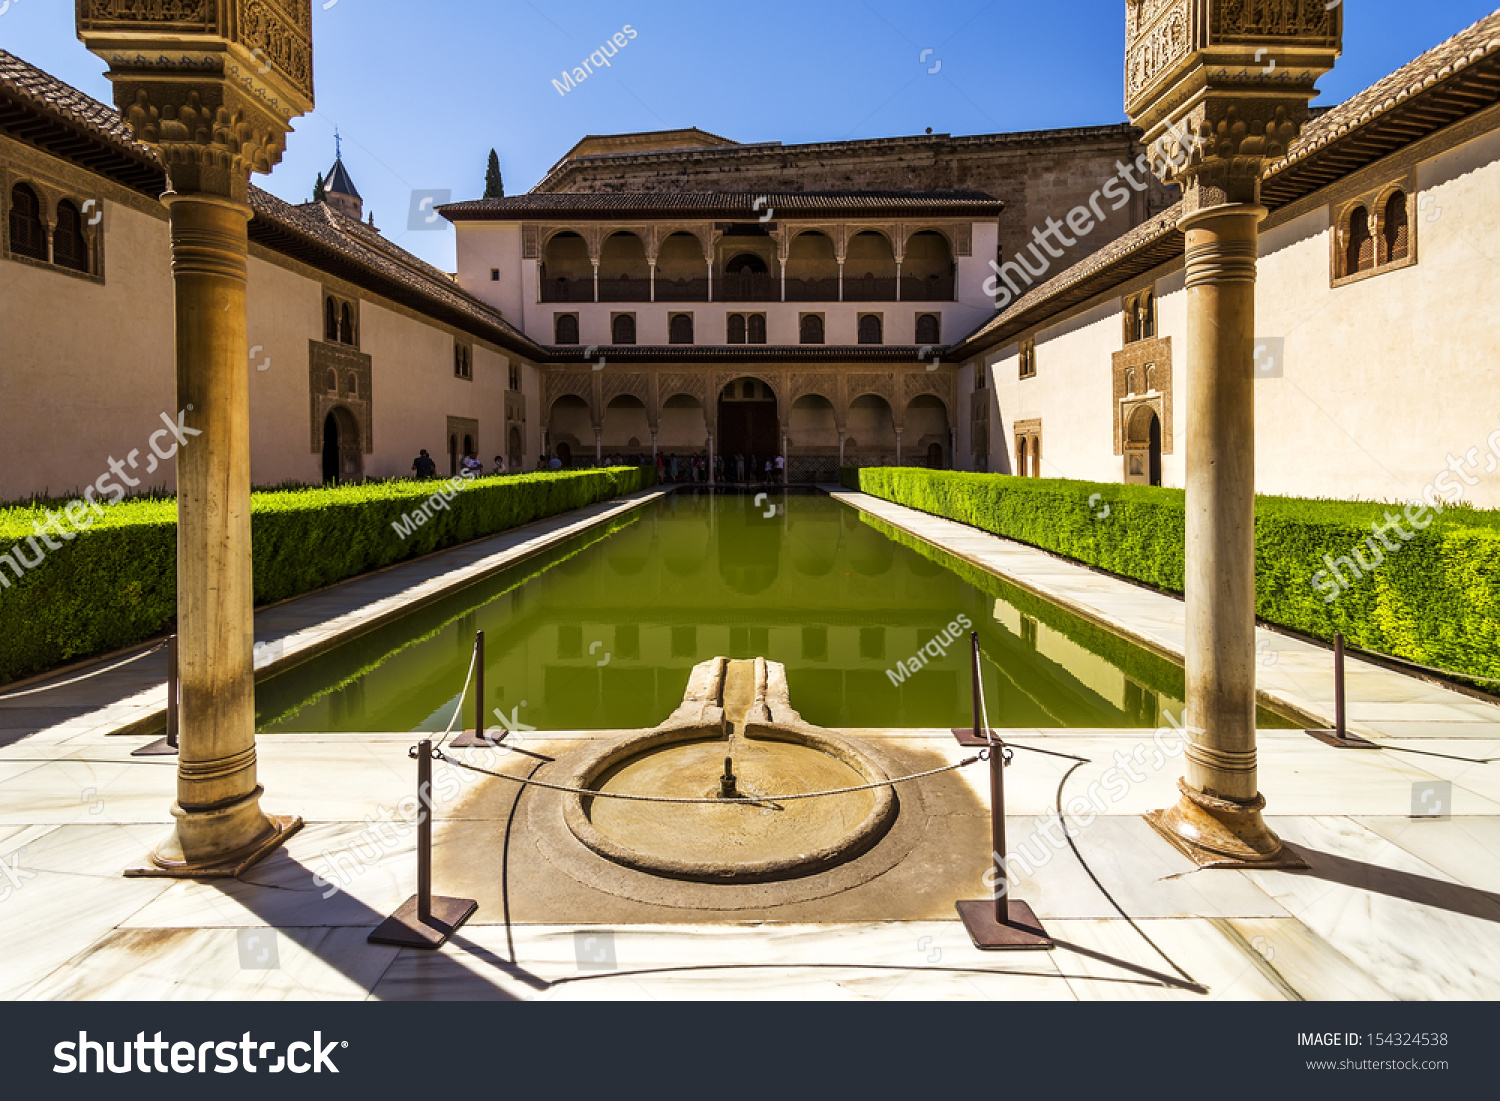 Patio De Los Arrayanes Court Myrtles Stock Photo 154324538 - Shutterstock